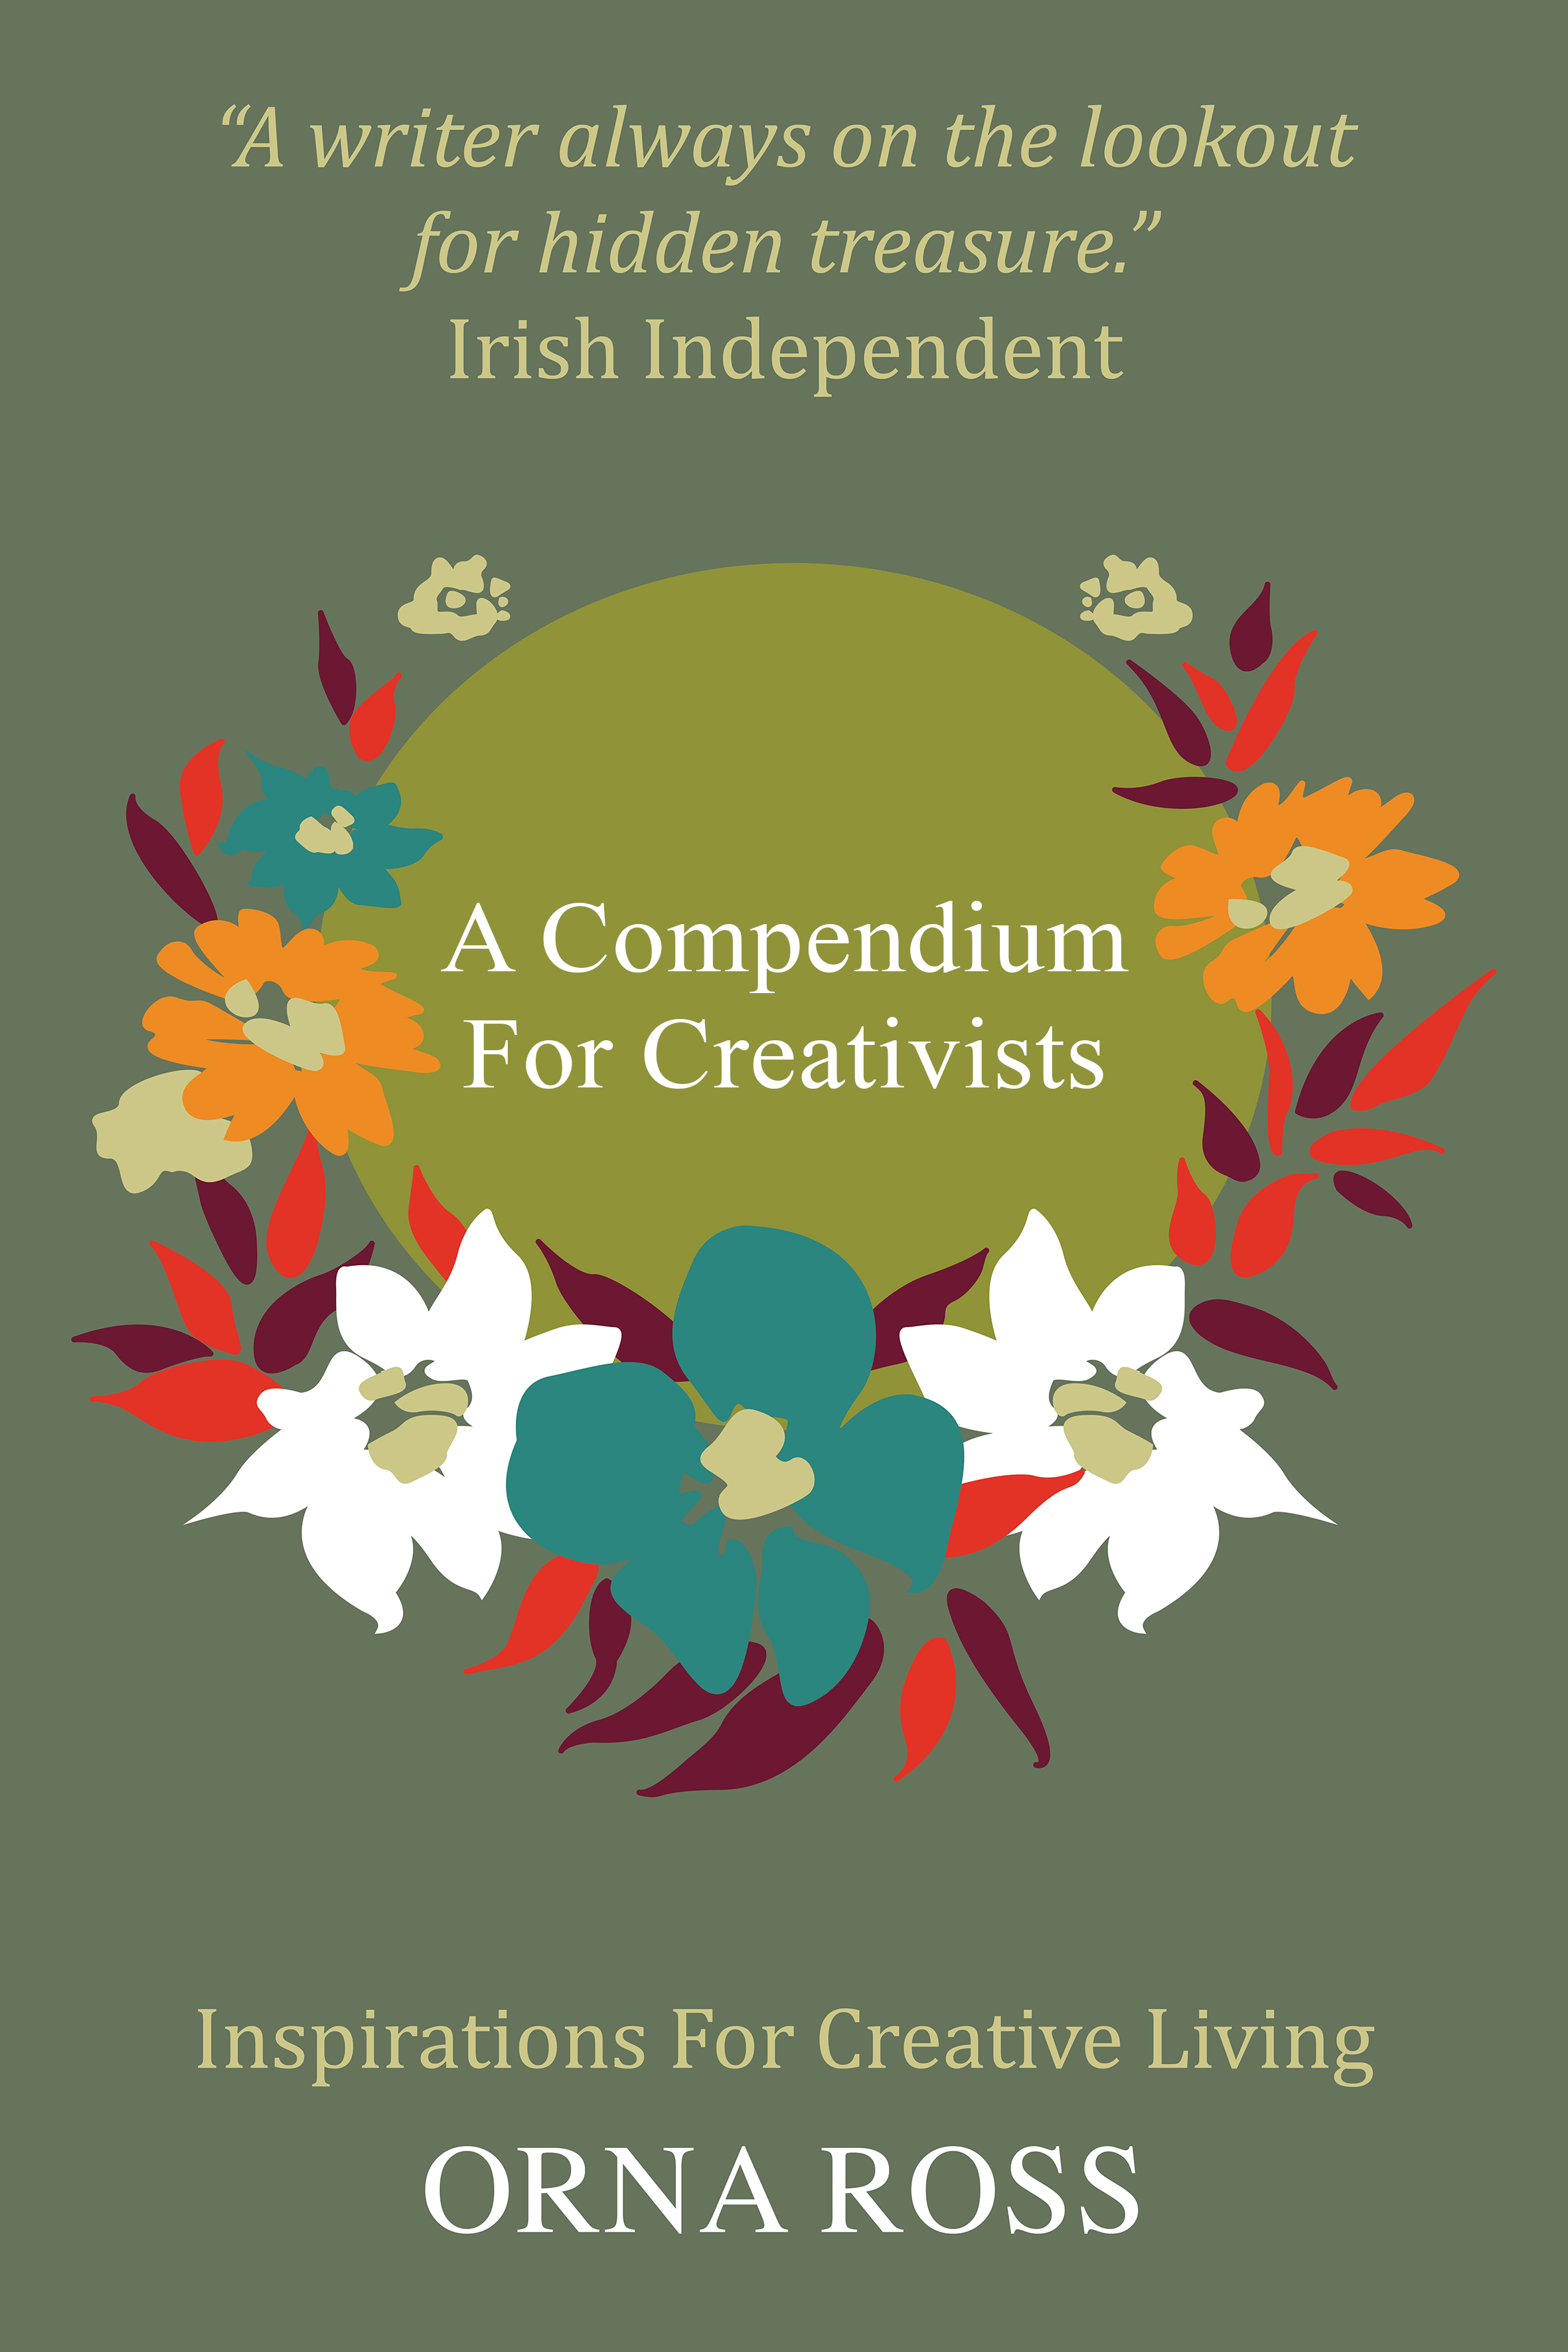 Like to Review My Compendium For Creativists?